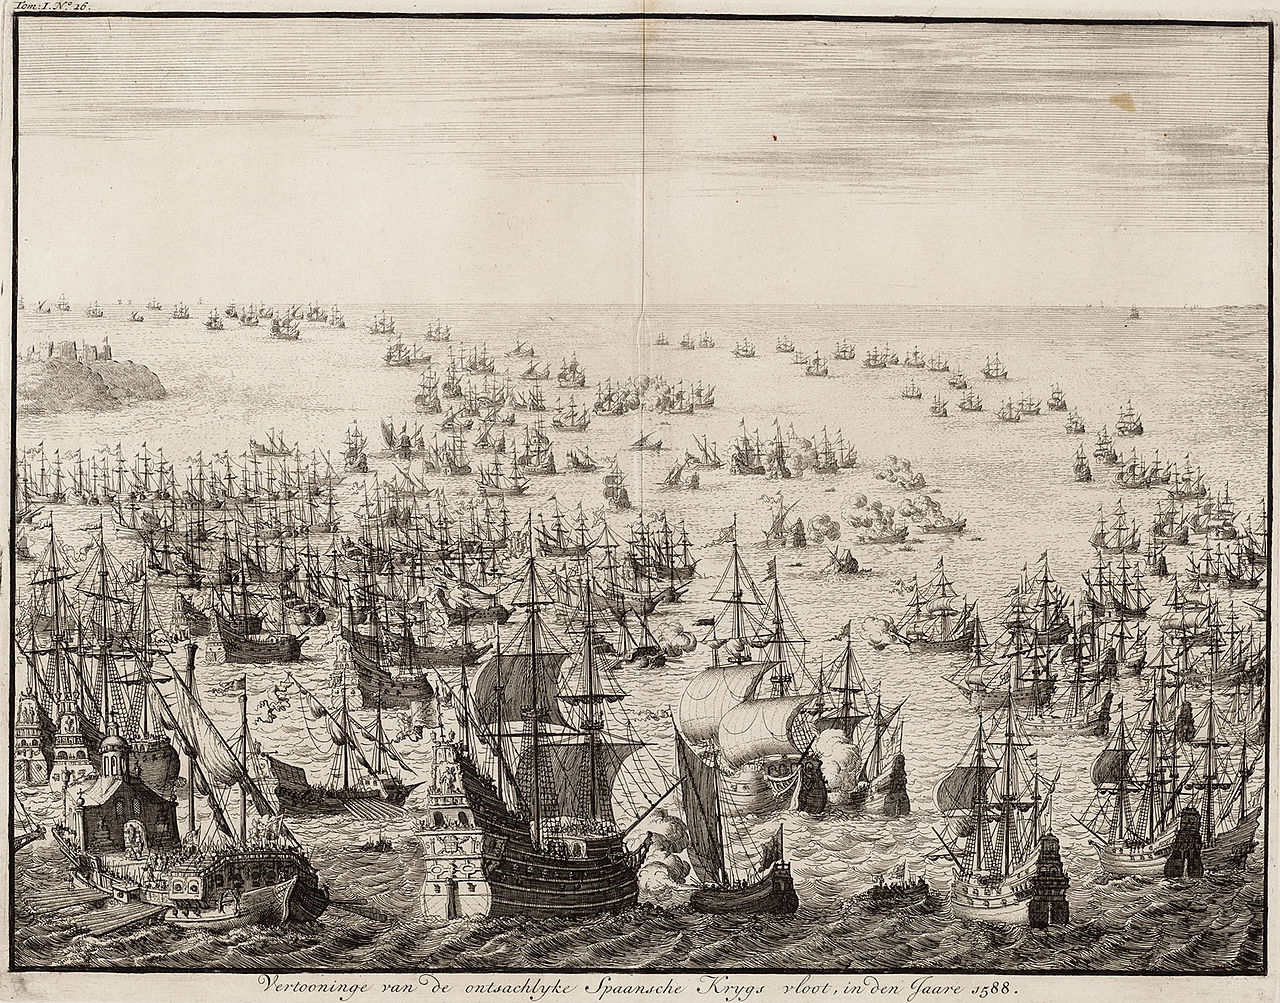 The mighty display of the Spanish armada in 1588 by Jan Luyken.